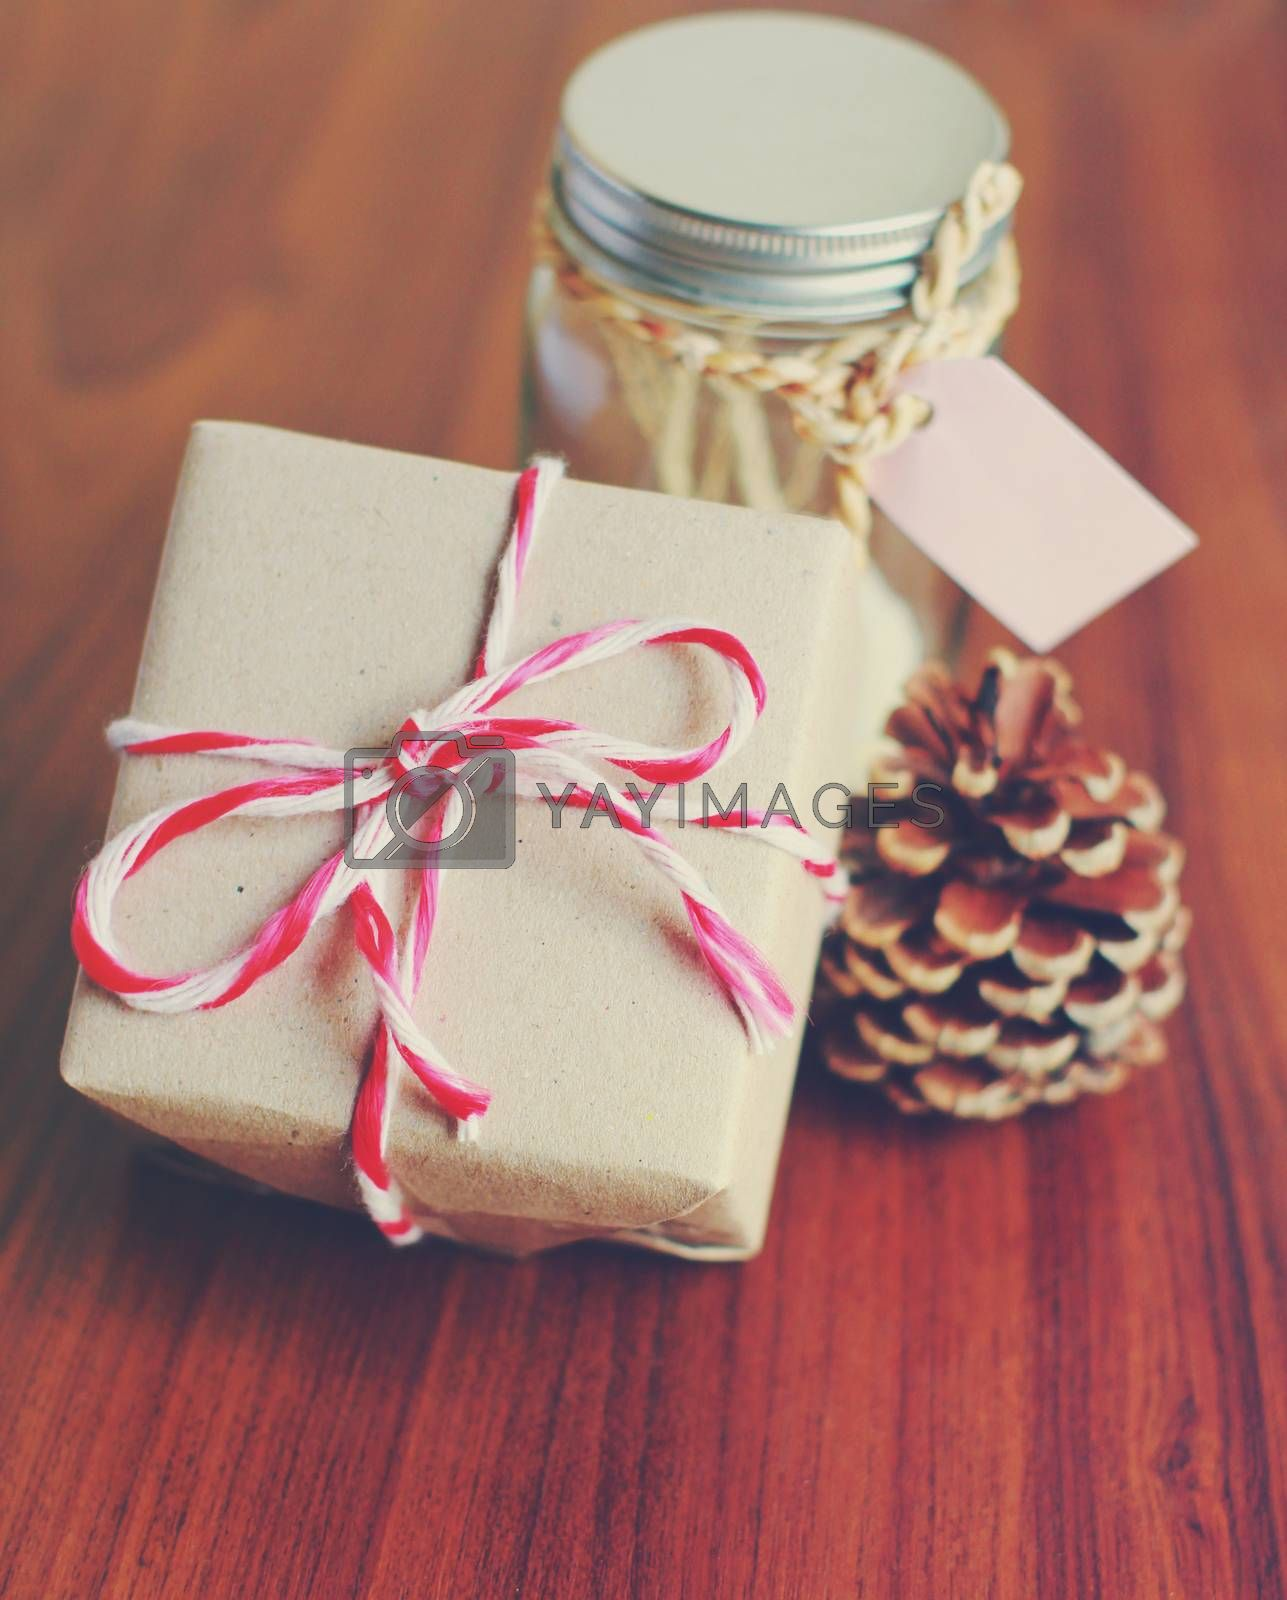 Handmade gift box and jar for present with retro filter effect